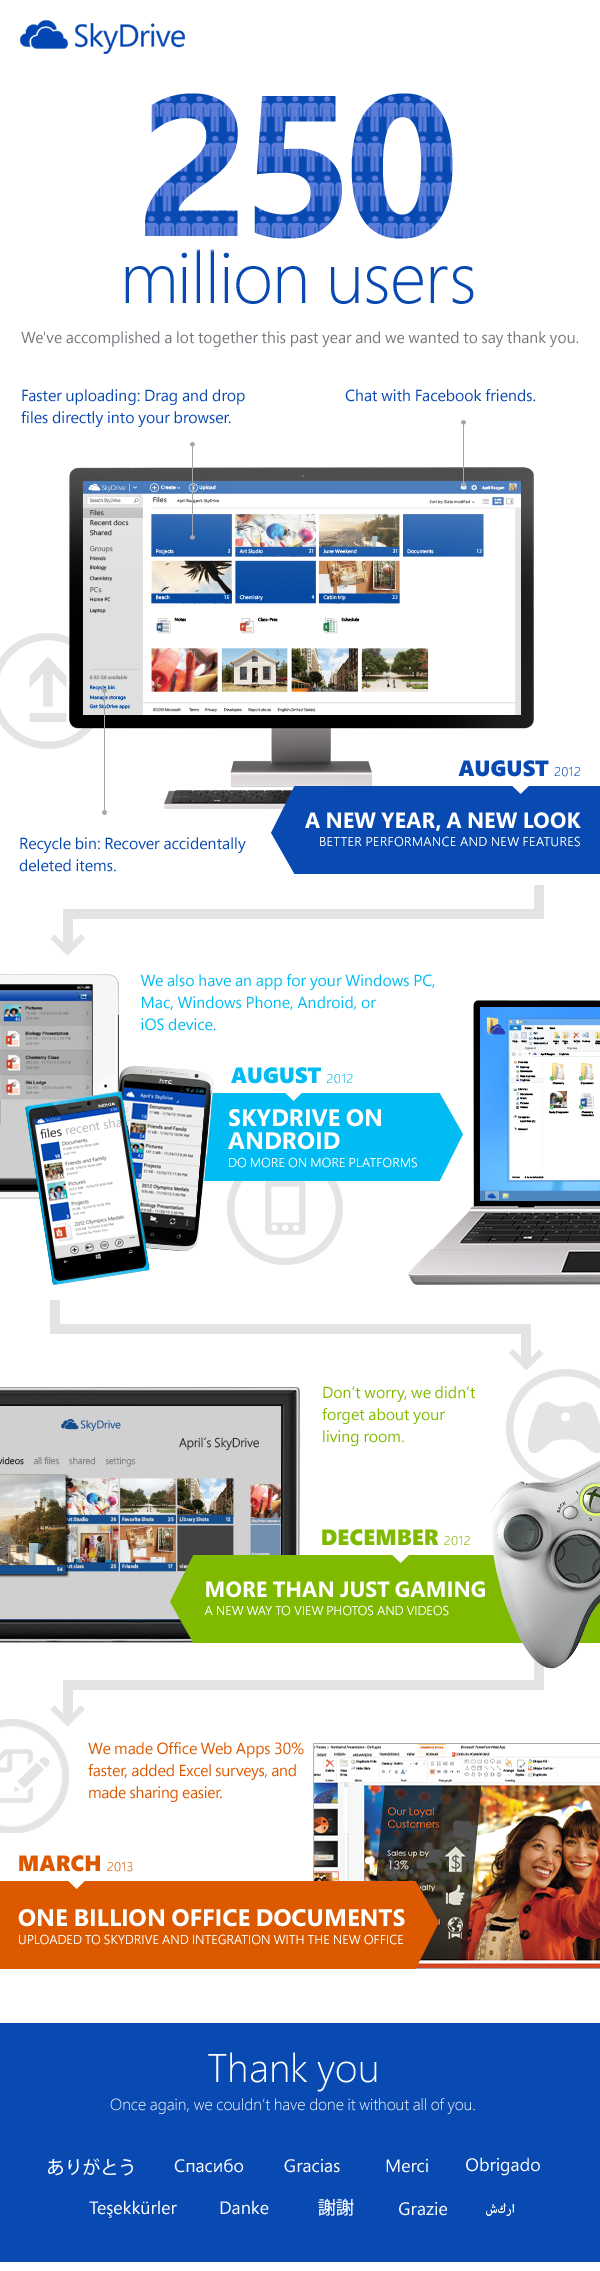 microsoft_announces_over_250m_skydrive_users_50m_added_since_windows_8